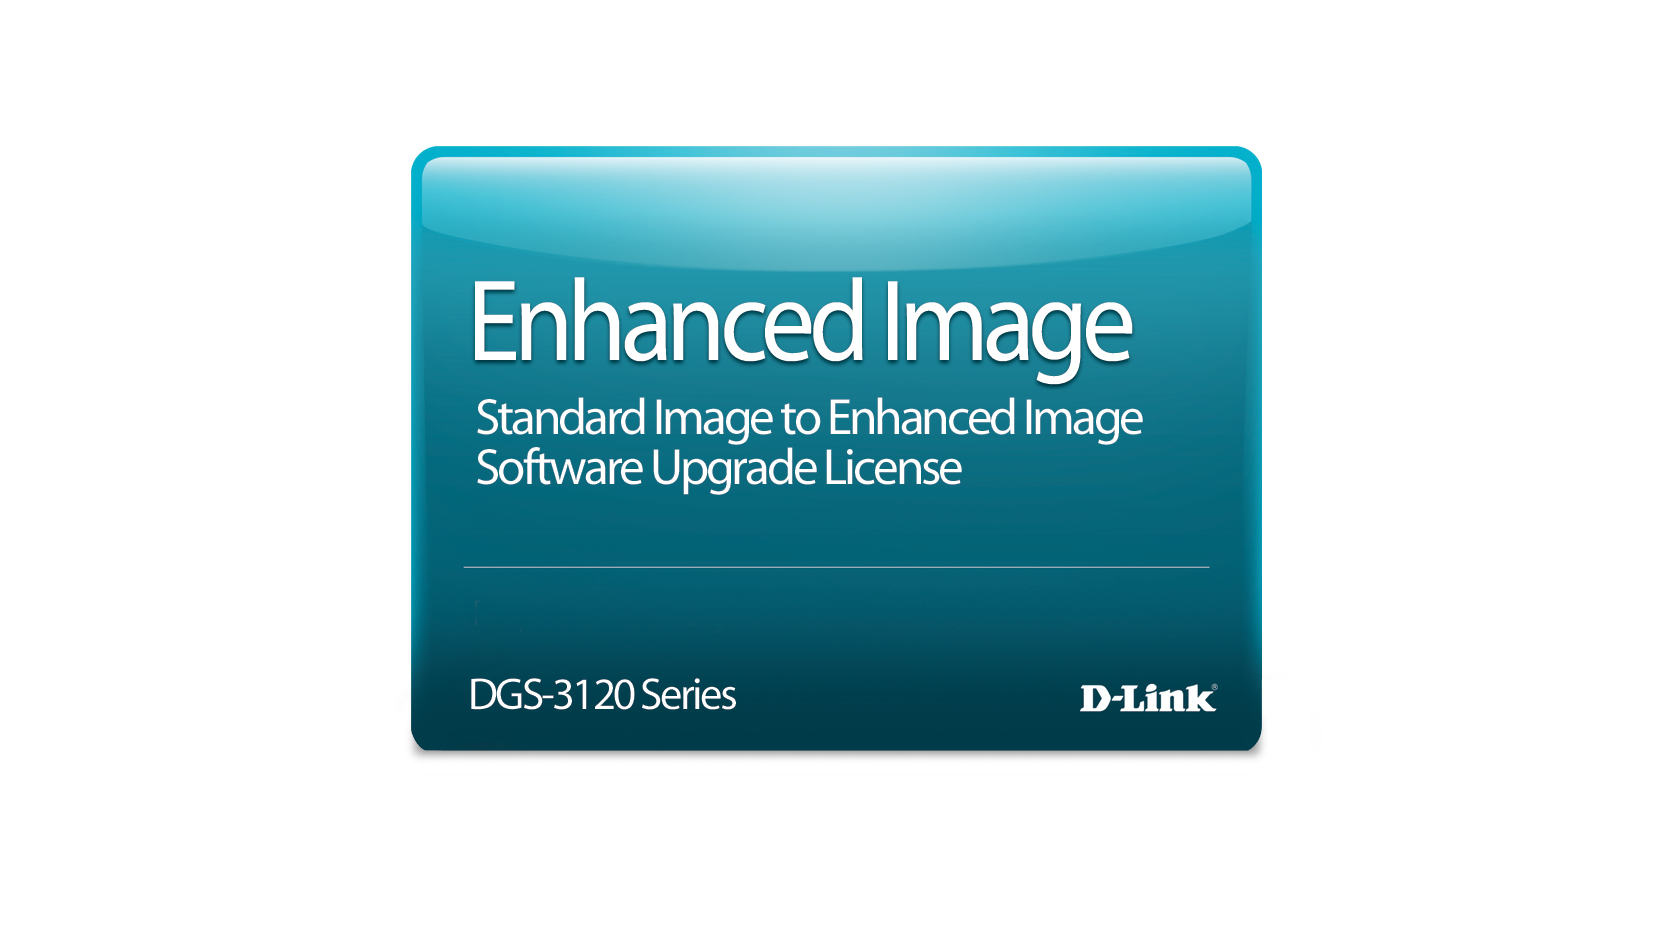 Enhanced Image - Product upgrade license - upgrade from Standard